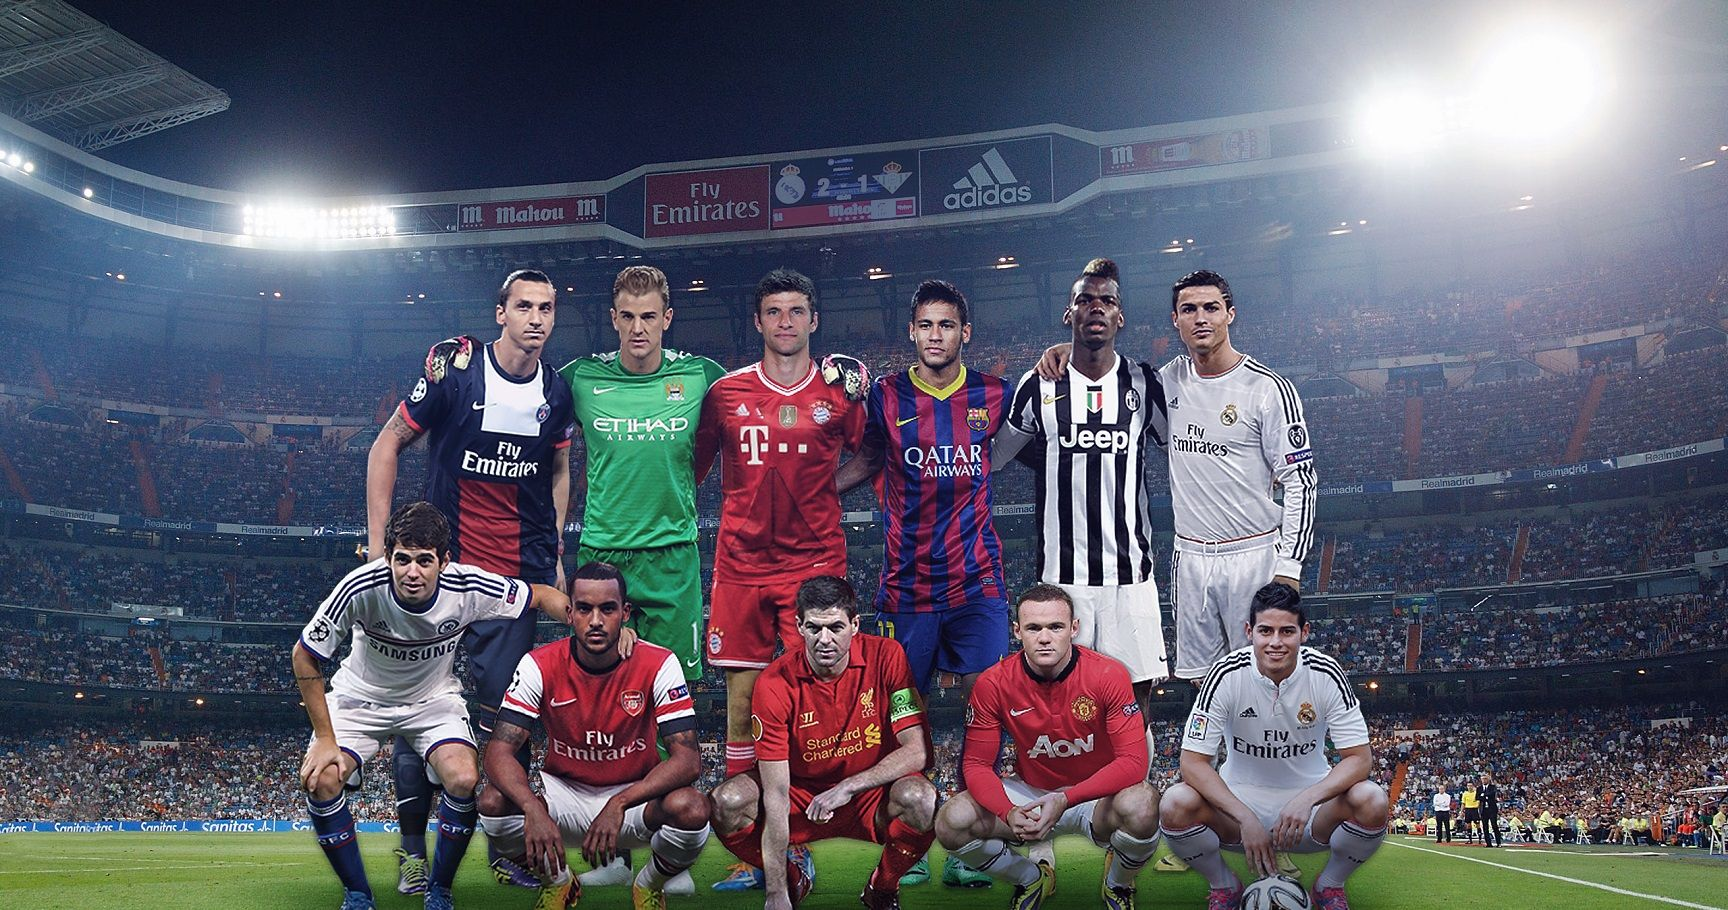 The 20 Most Valuable Soccer Teams in the World for 2015